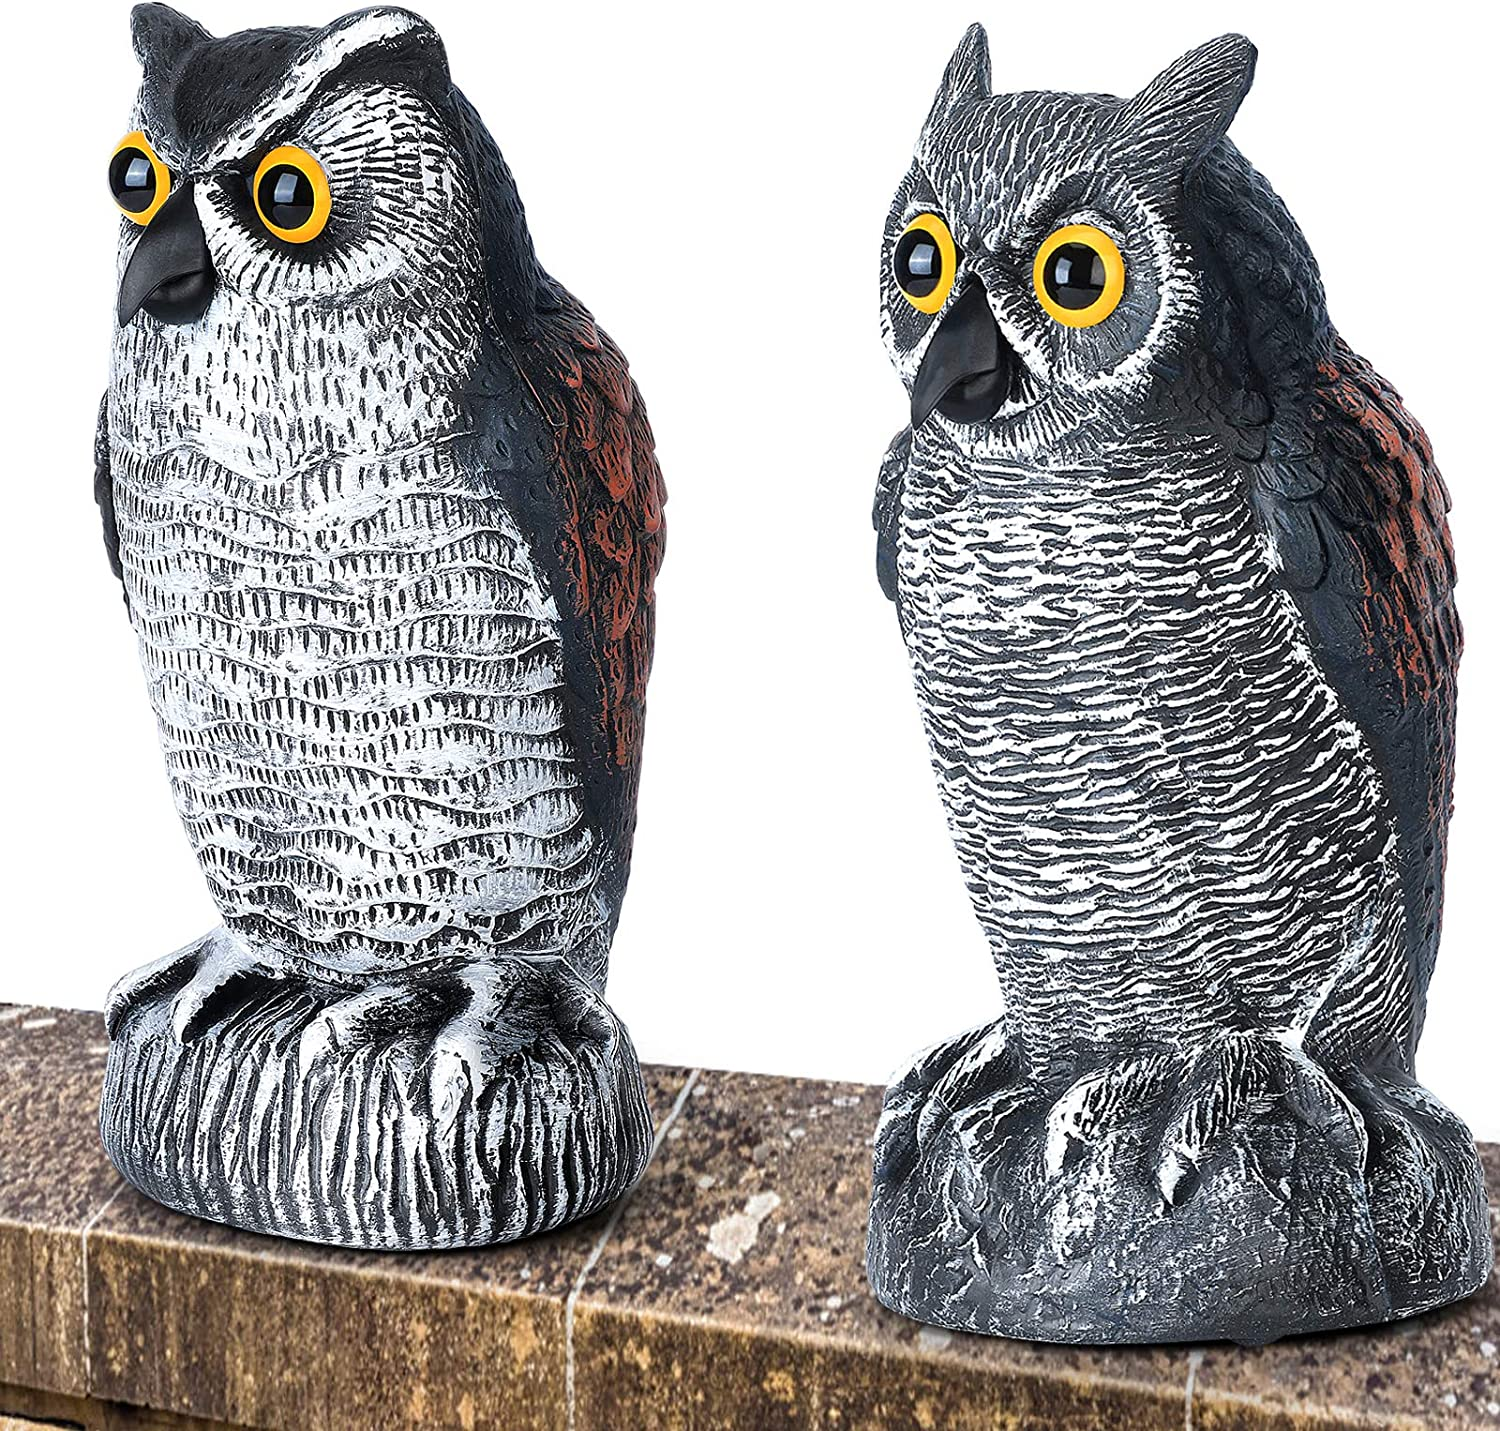 2 Pack Plastic Owl to Keep Birds Away,Owl Scarecrows for Bird Control for Garden Yard Outdoor